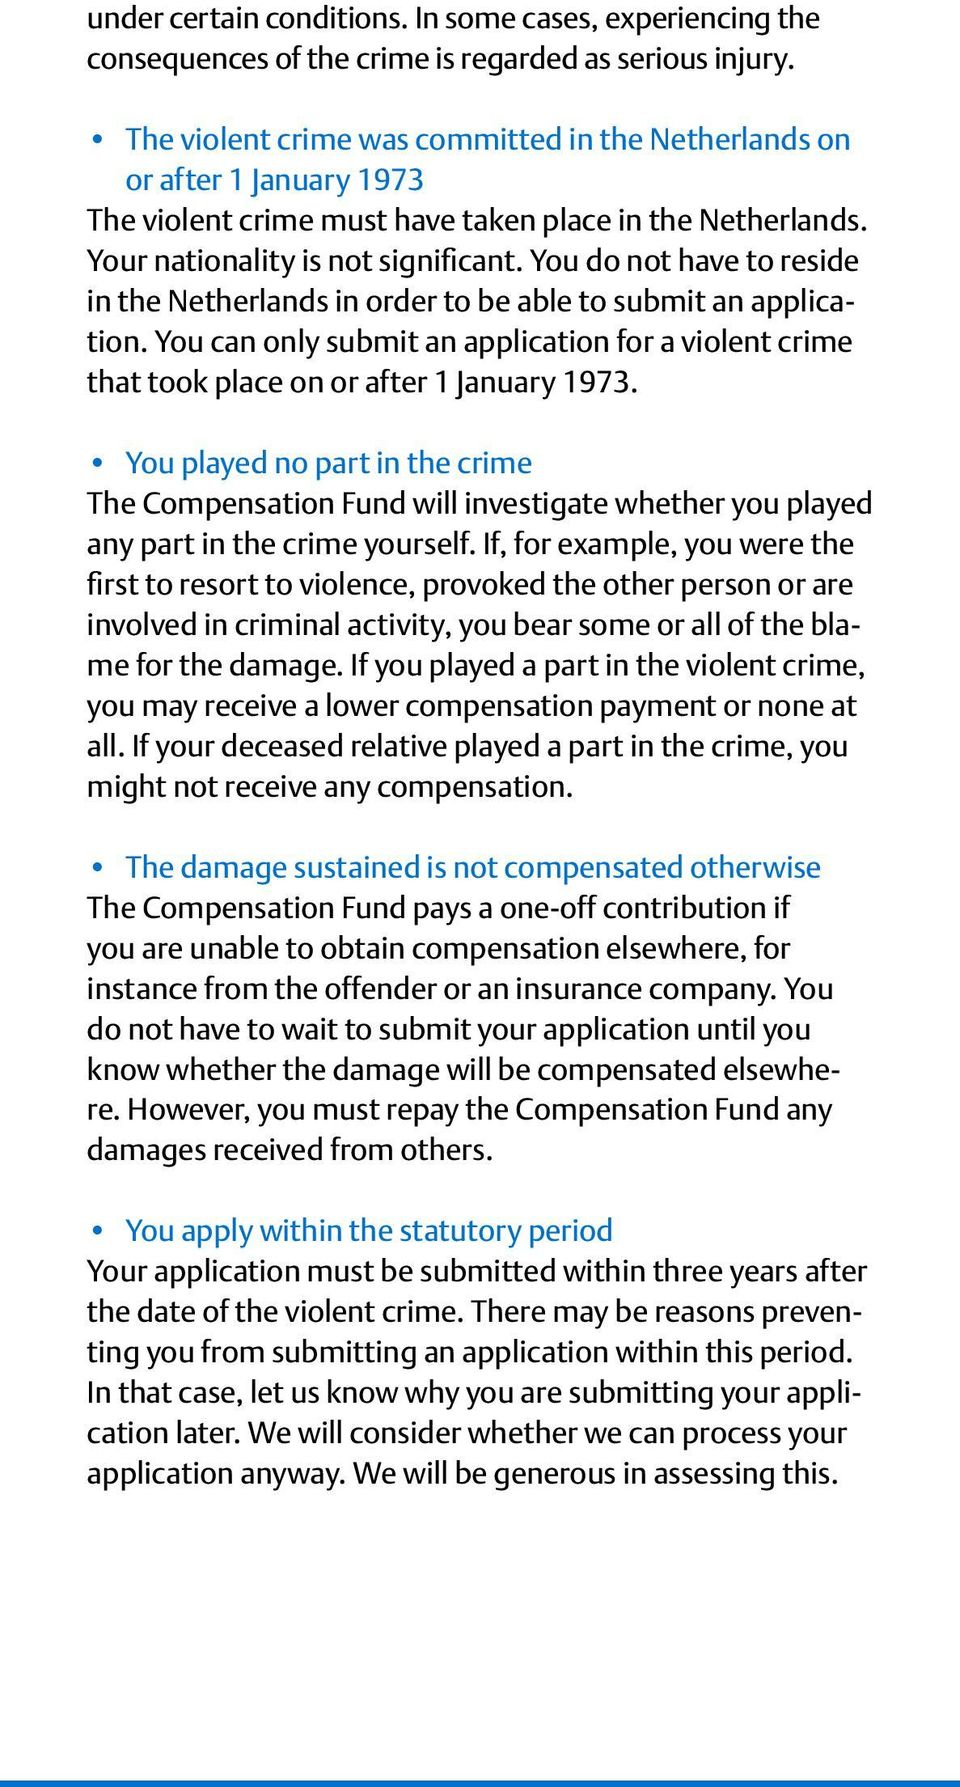 You do not have to reside in the Netherlands in order to be able to submit an application. You can only submit an application for a violent crime that took place on or after 1 January 1973.